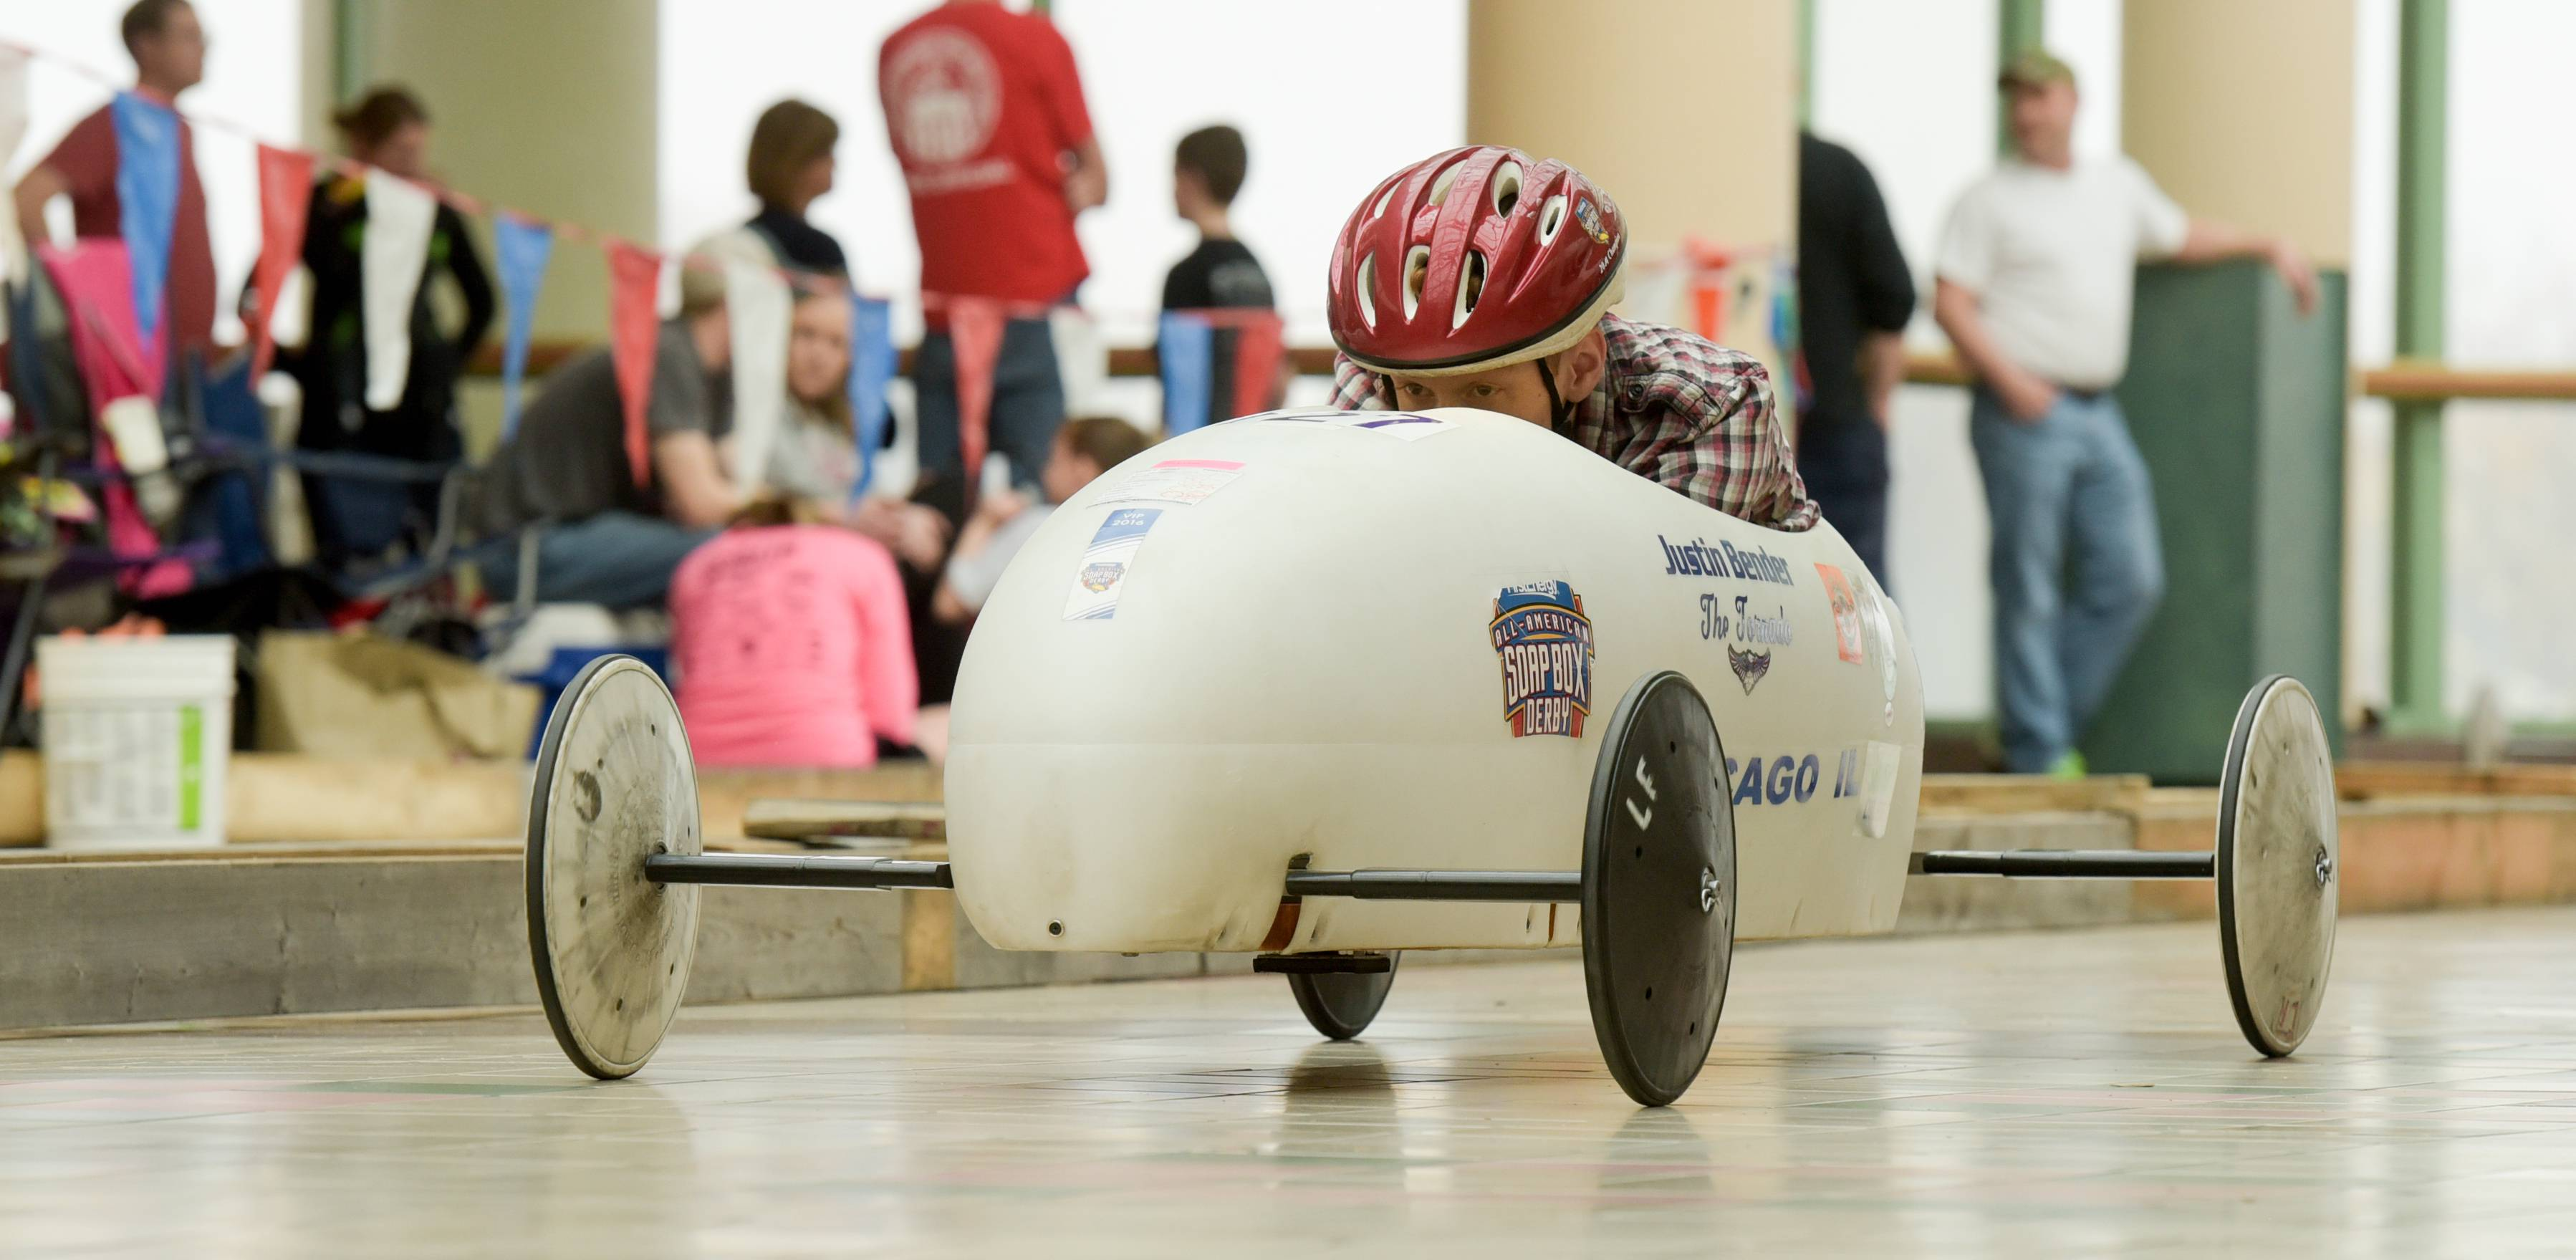 Justin Bender, 16, of Wauconda competes Sunday in the Greater Chicago Soap Box Derby Races at Charlestowne Mall in St. Charles. More than 30 drivers from across the Midwest competed in the races.